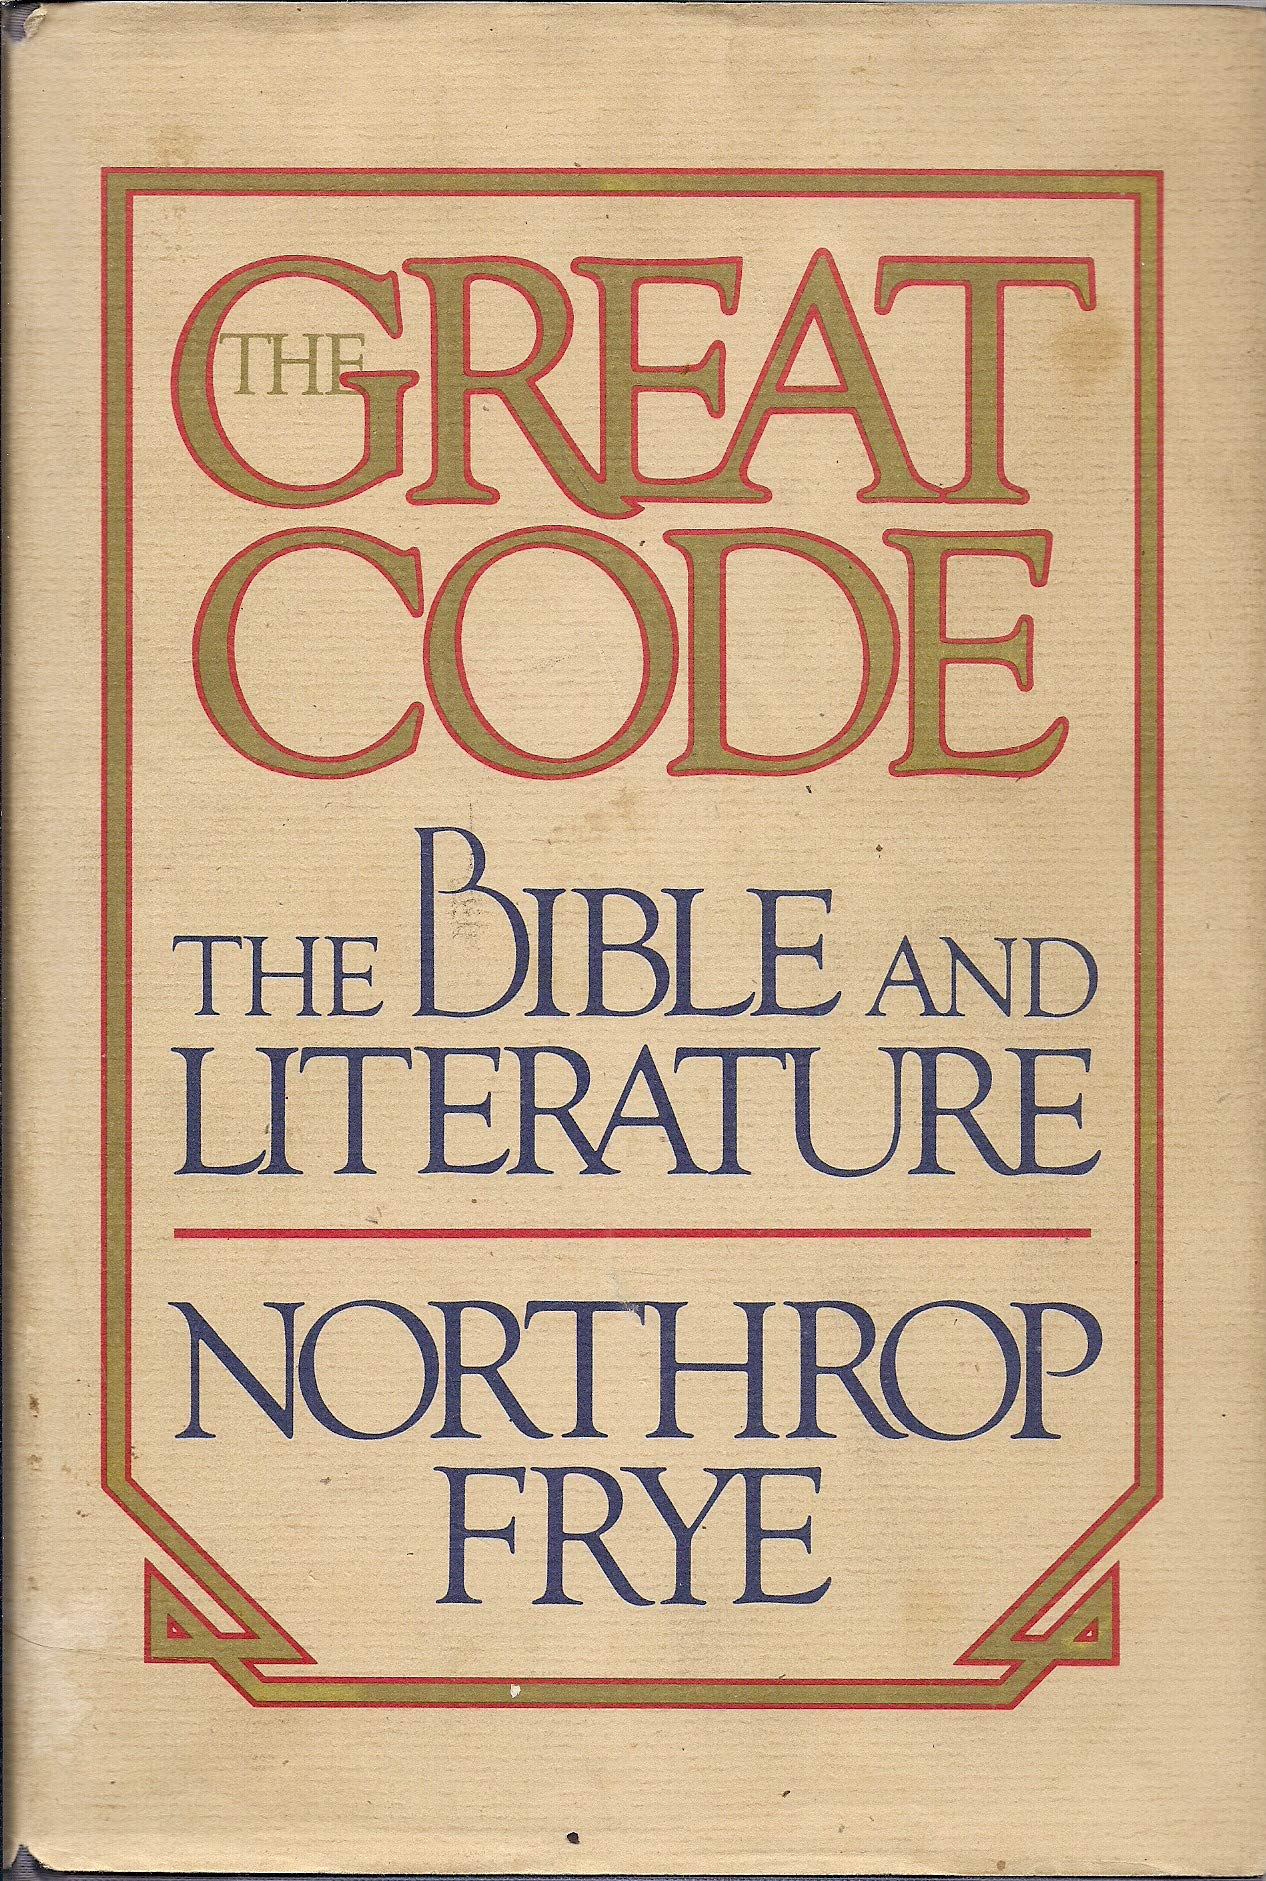 The Great Code: The Bible and Literature: Northrop Frye: Amazon ...